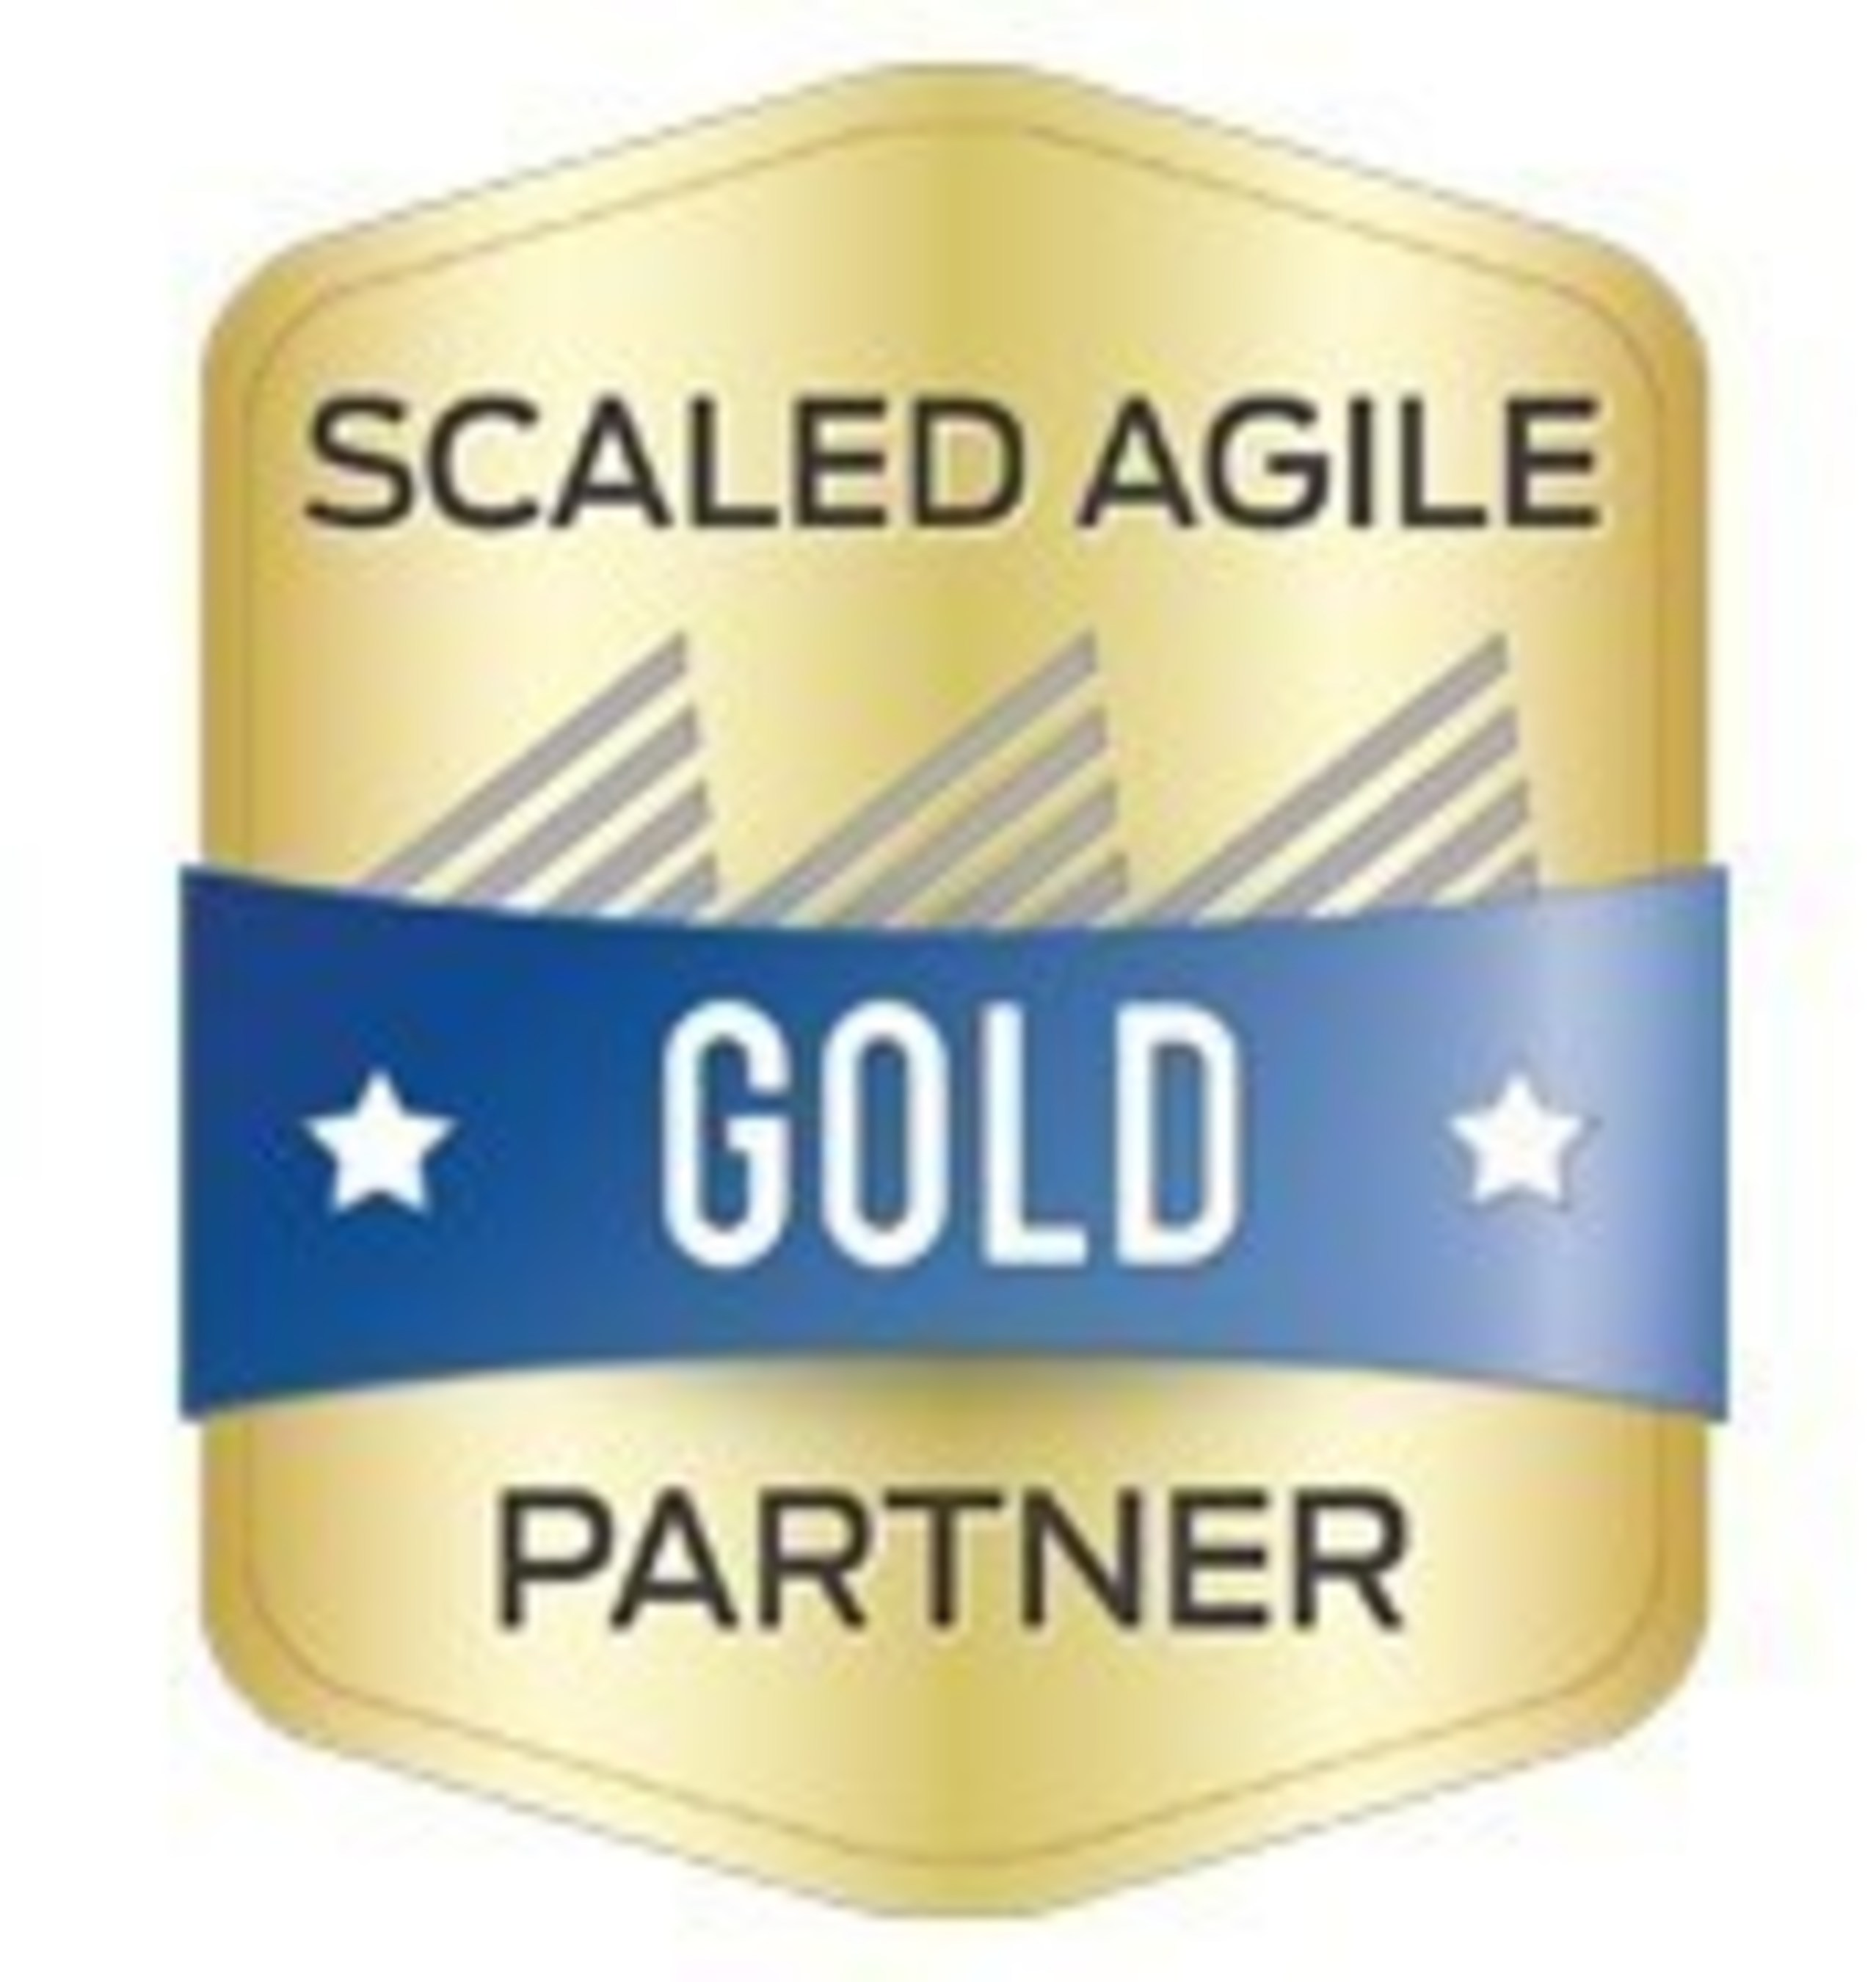 Agilecraft Achieves Scaled Agiles Highest Level Of Partner